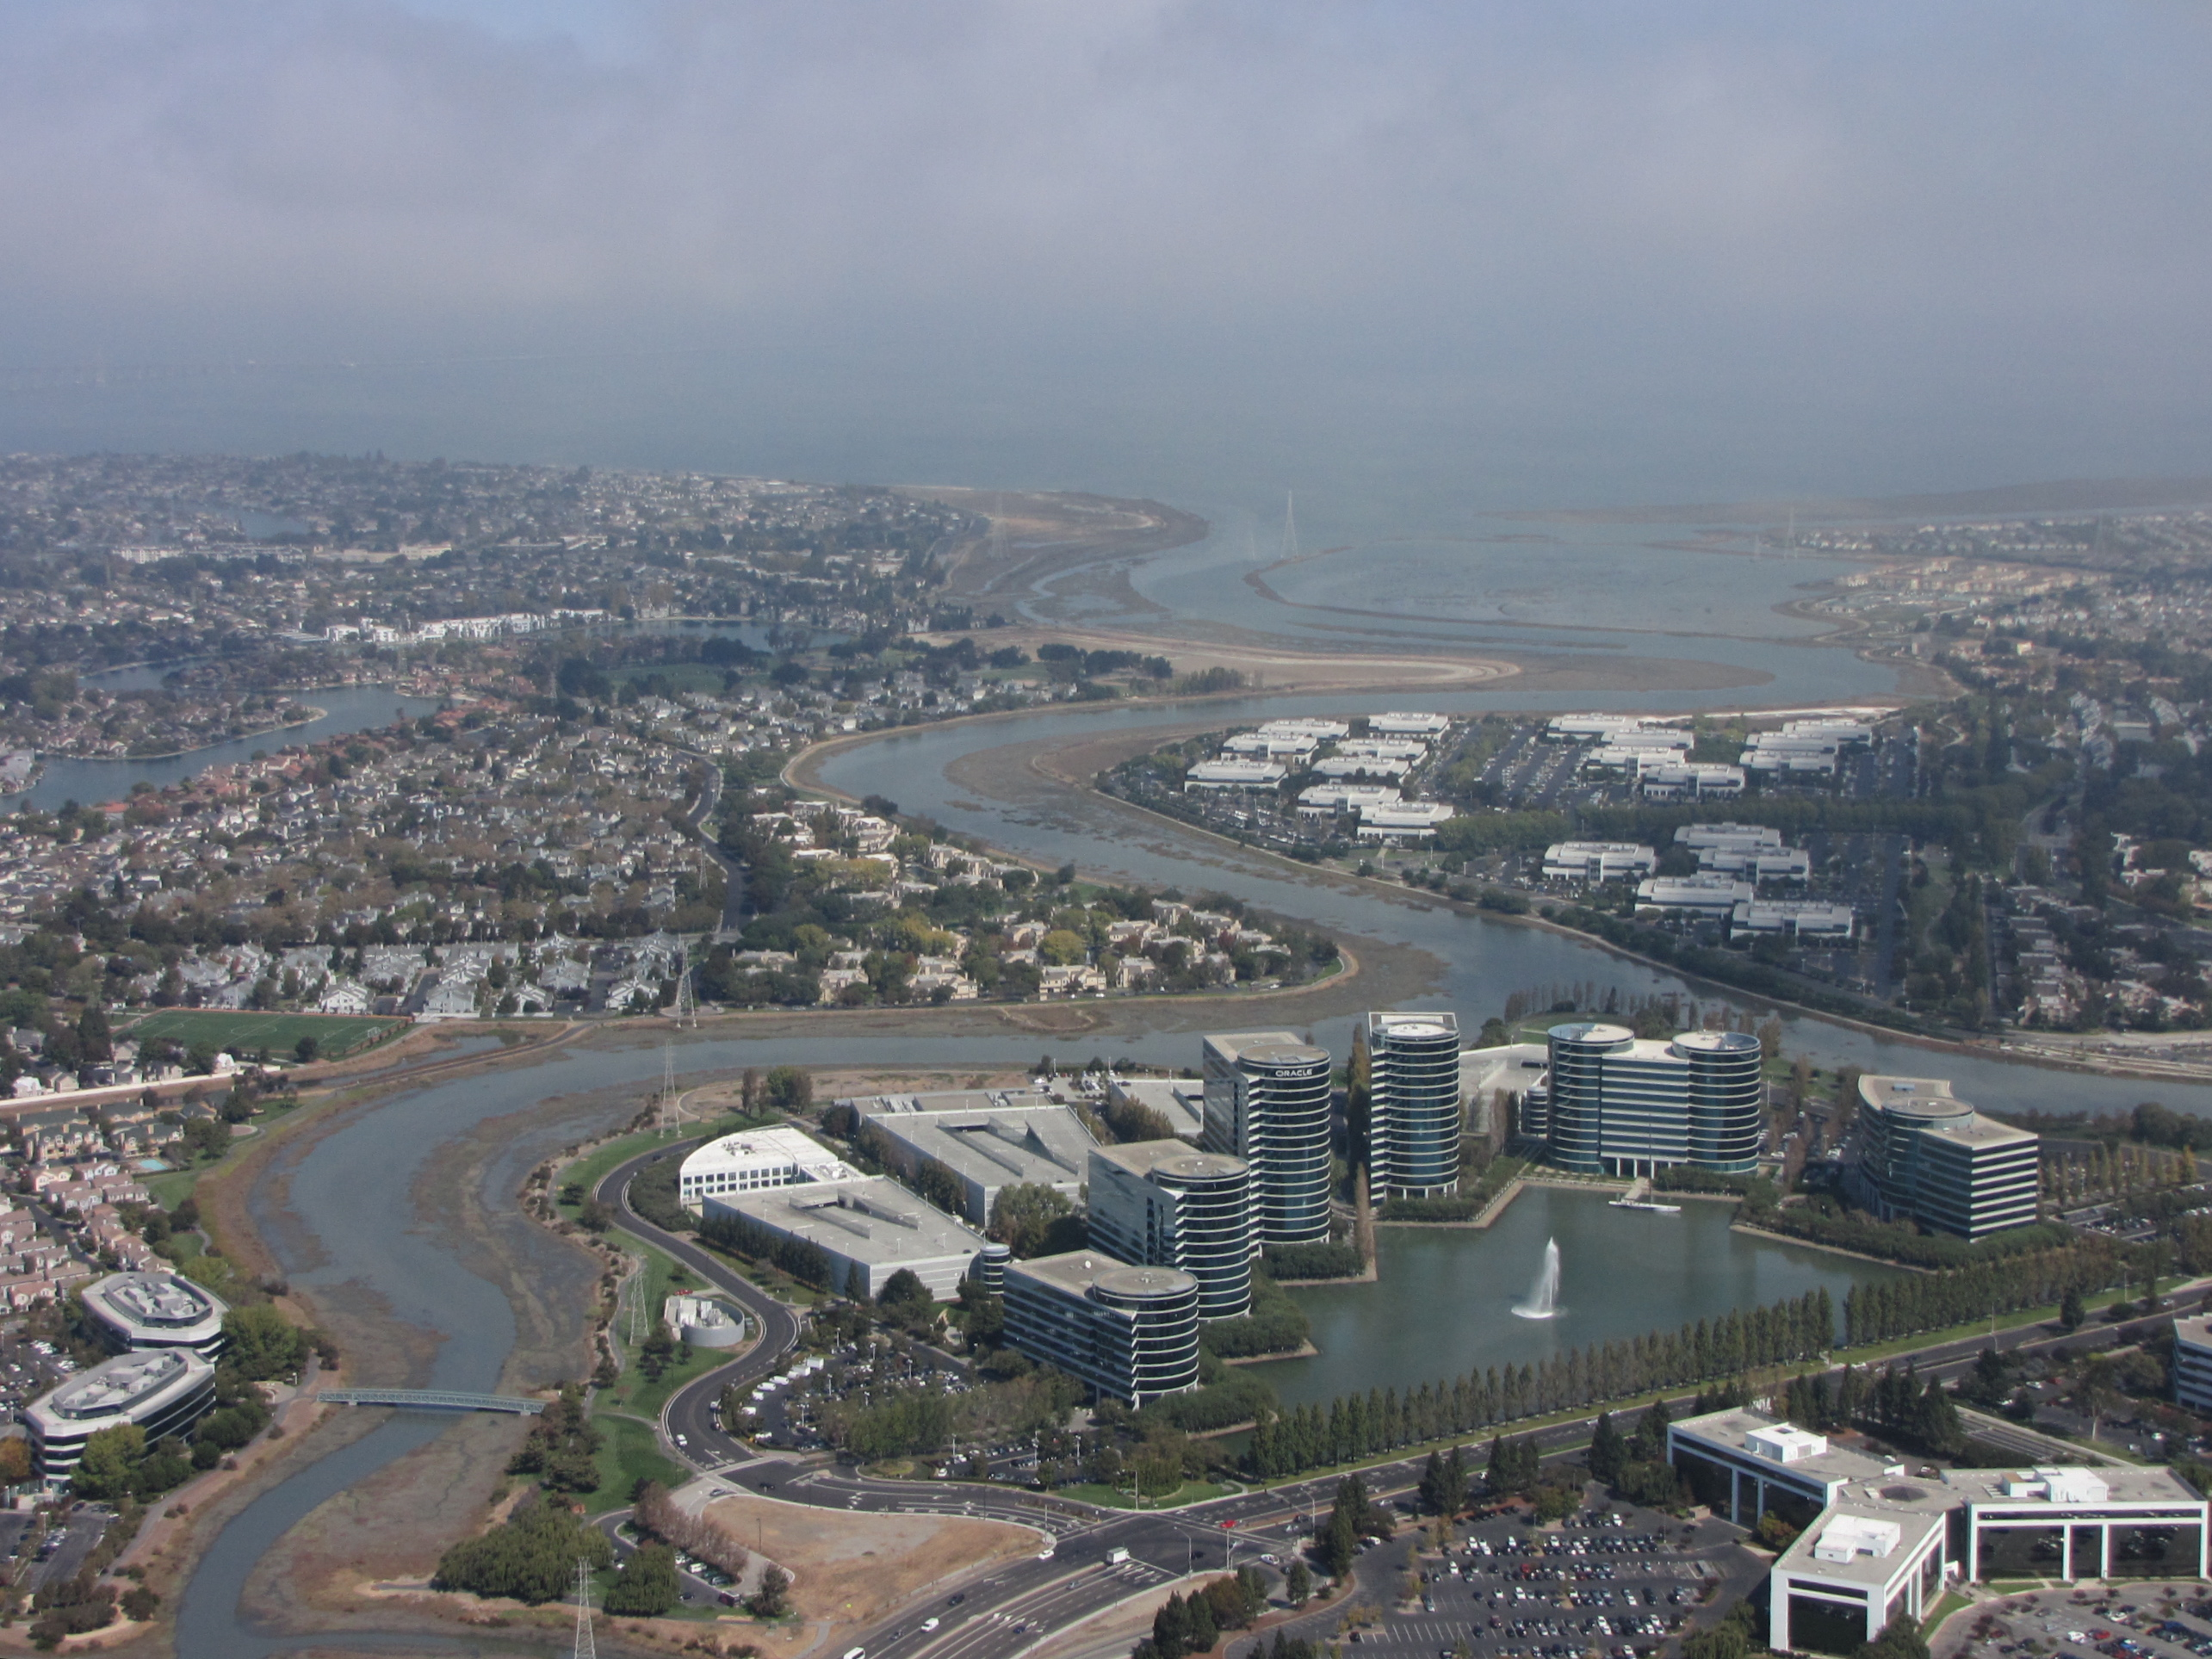 The Oracle campus in Redwood City, from the air. (Photo: Molly Samuel; Aerial support from LightHawk)